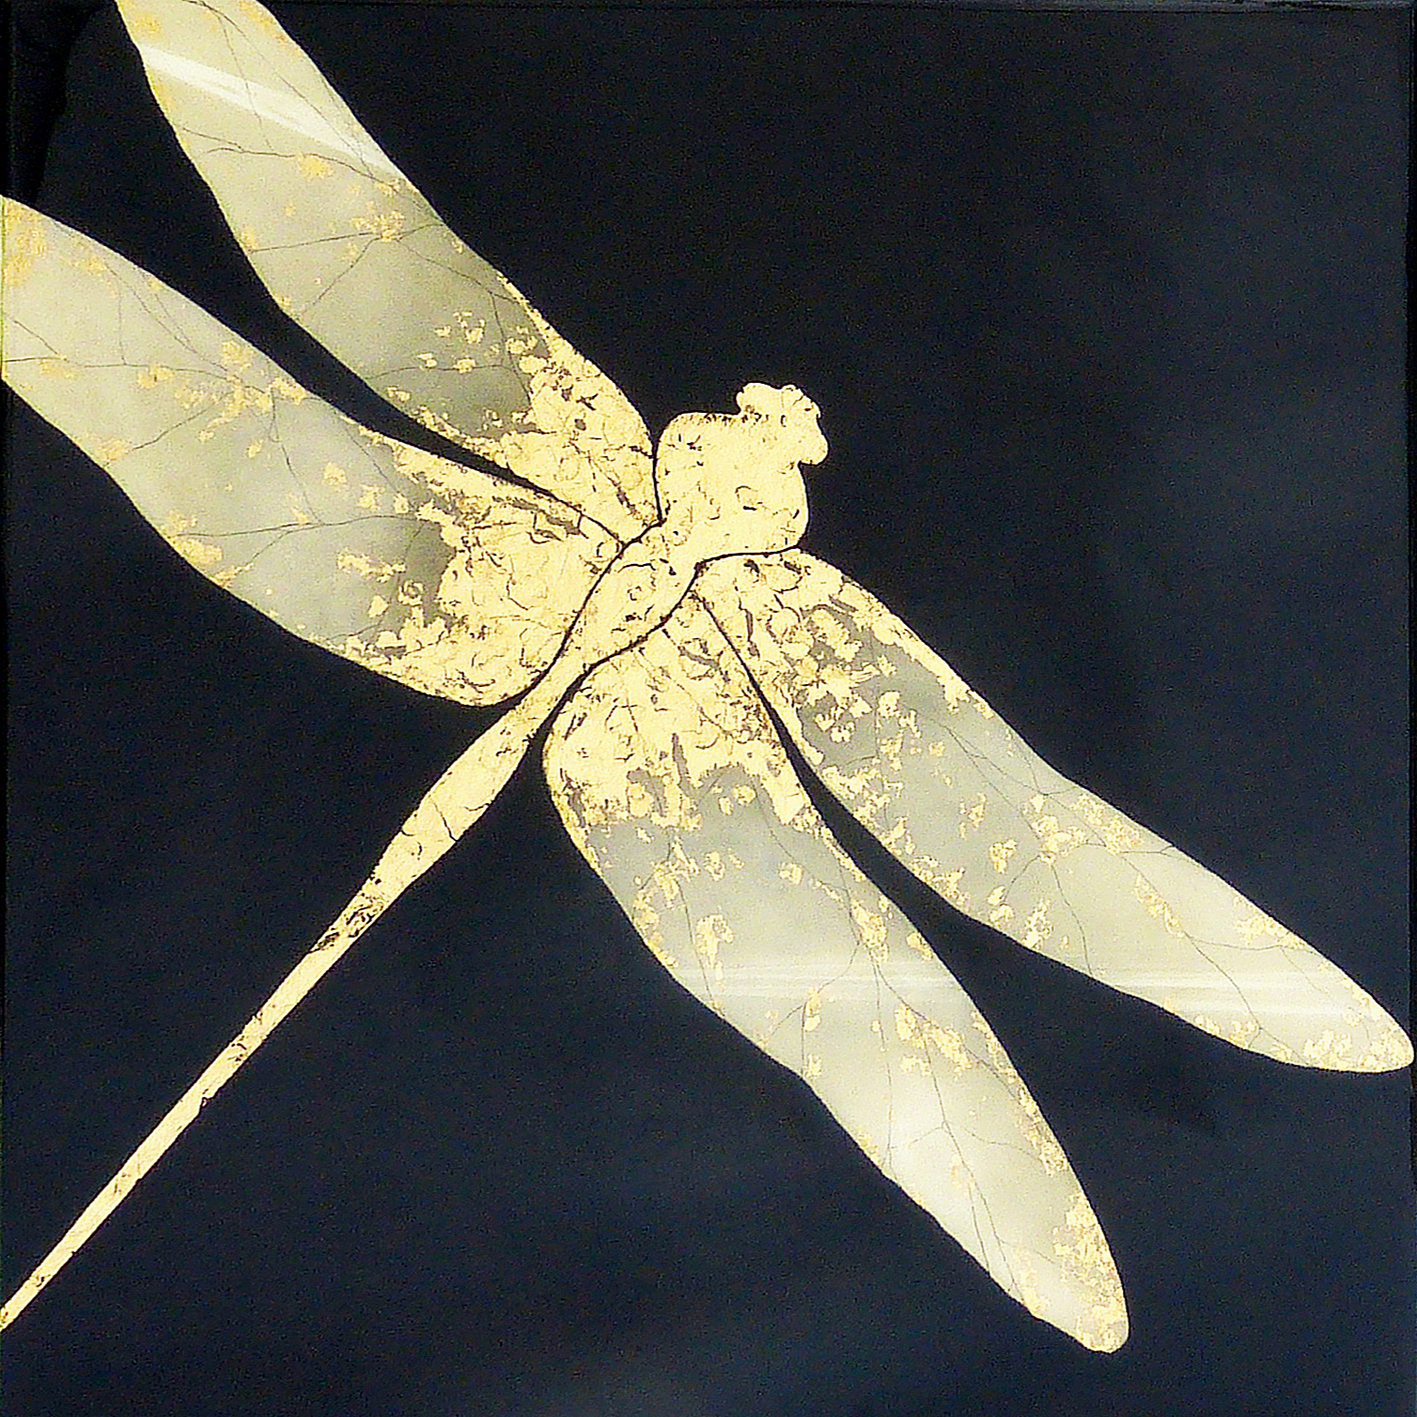 CHIFFON | 90x90cm | oil and metal leaf on board with high gloss epoxy resin | £2,400.00 |